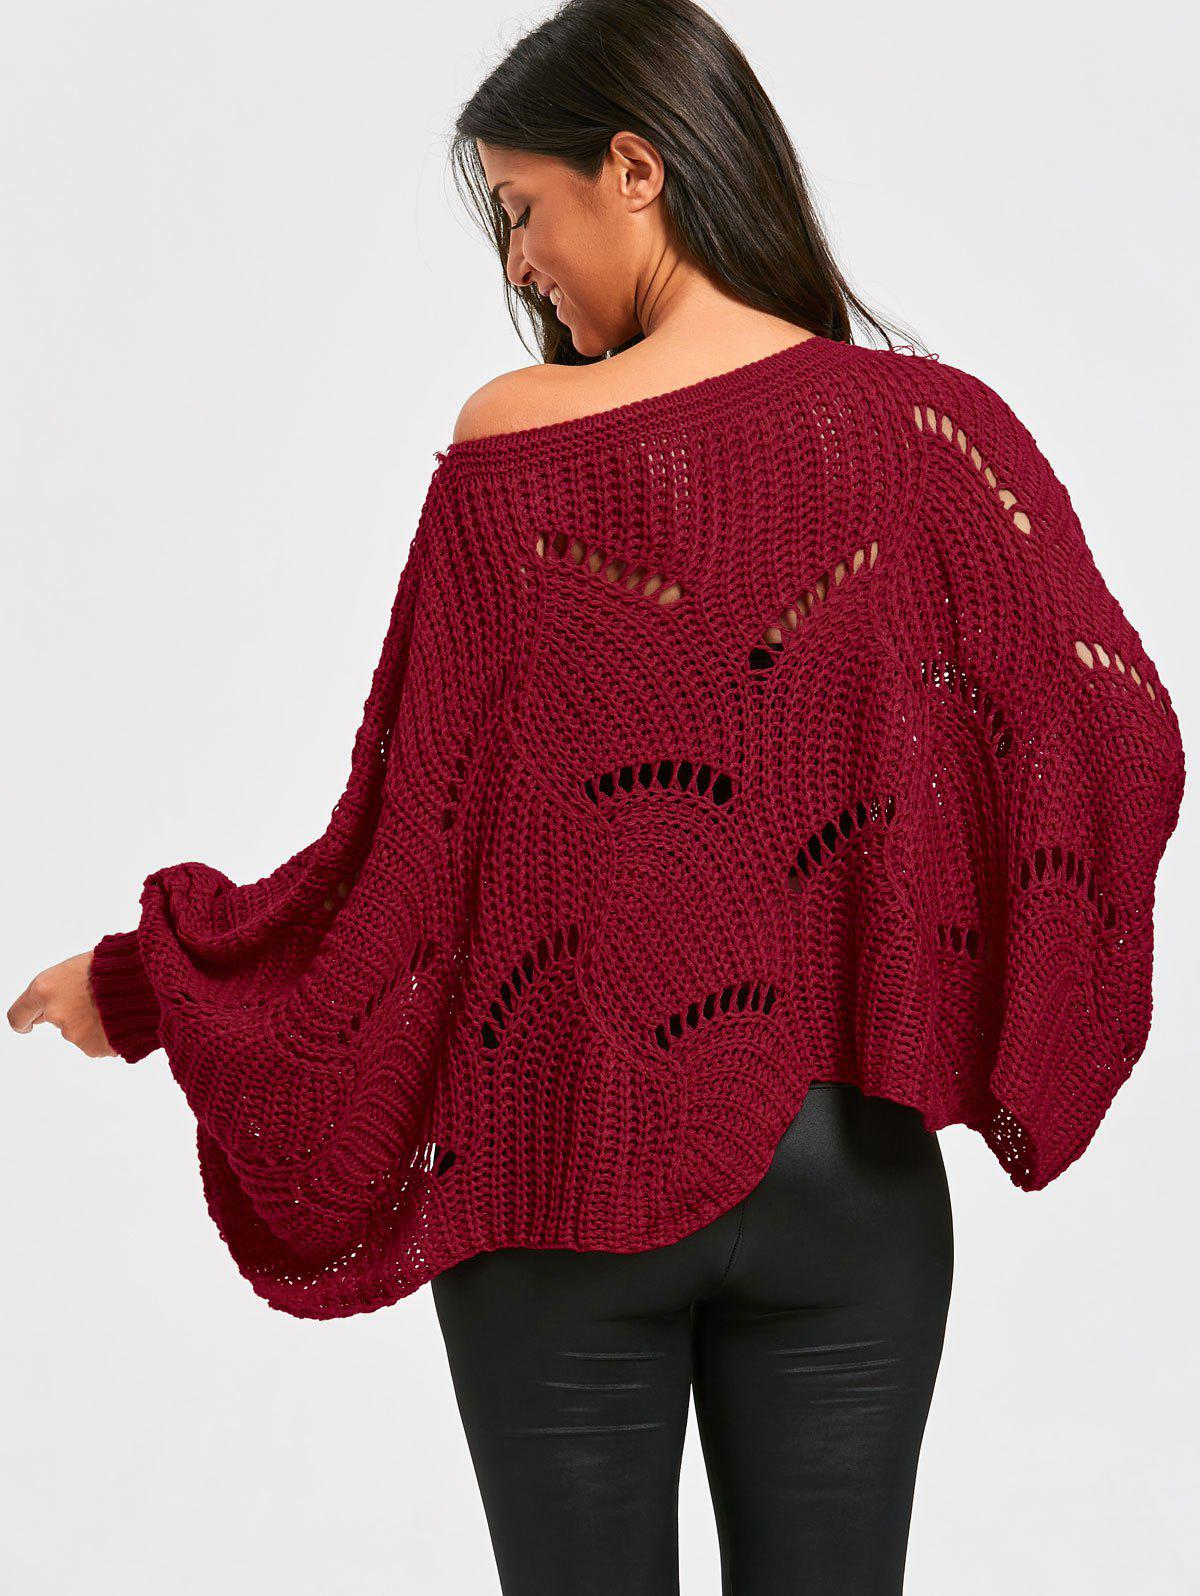 Batwing Sleeve Oversized Chunky Sweater - WINE RED ONE SIZE